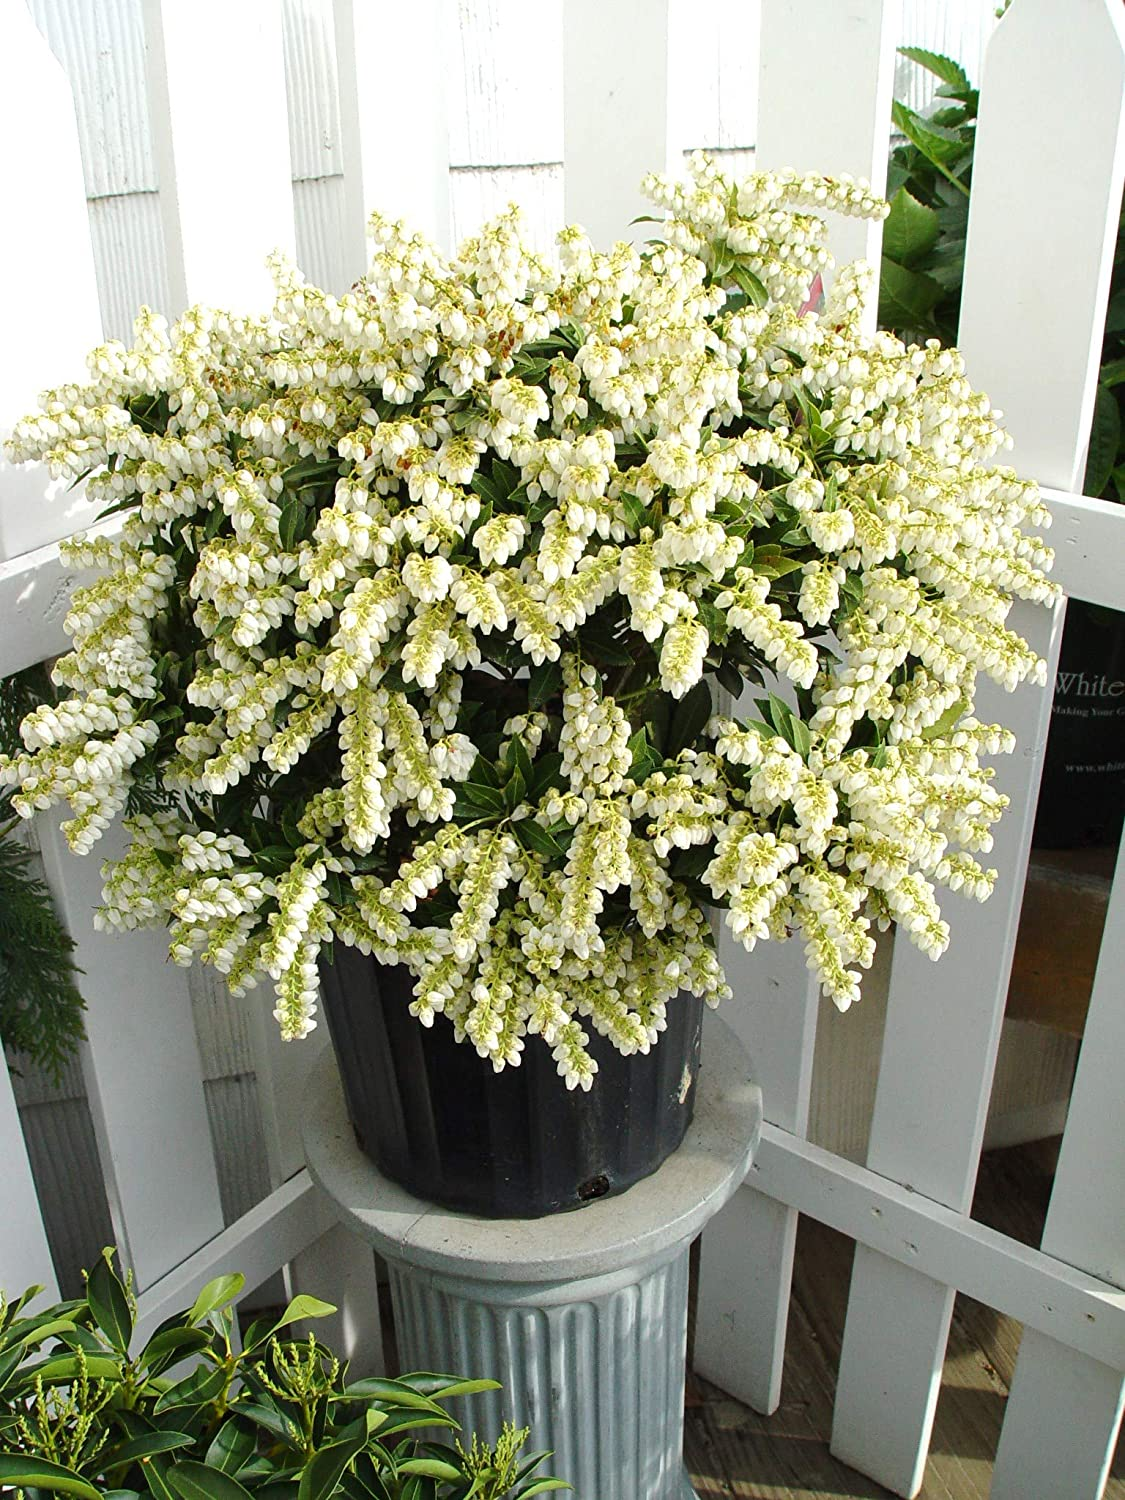 Brouwers Beauty Andromeda Brouwers Beauty Size Container #3 Pieris jap Evergreen